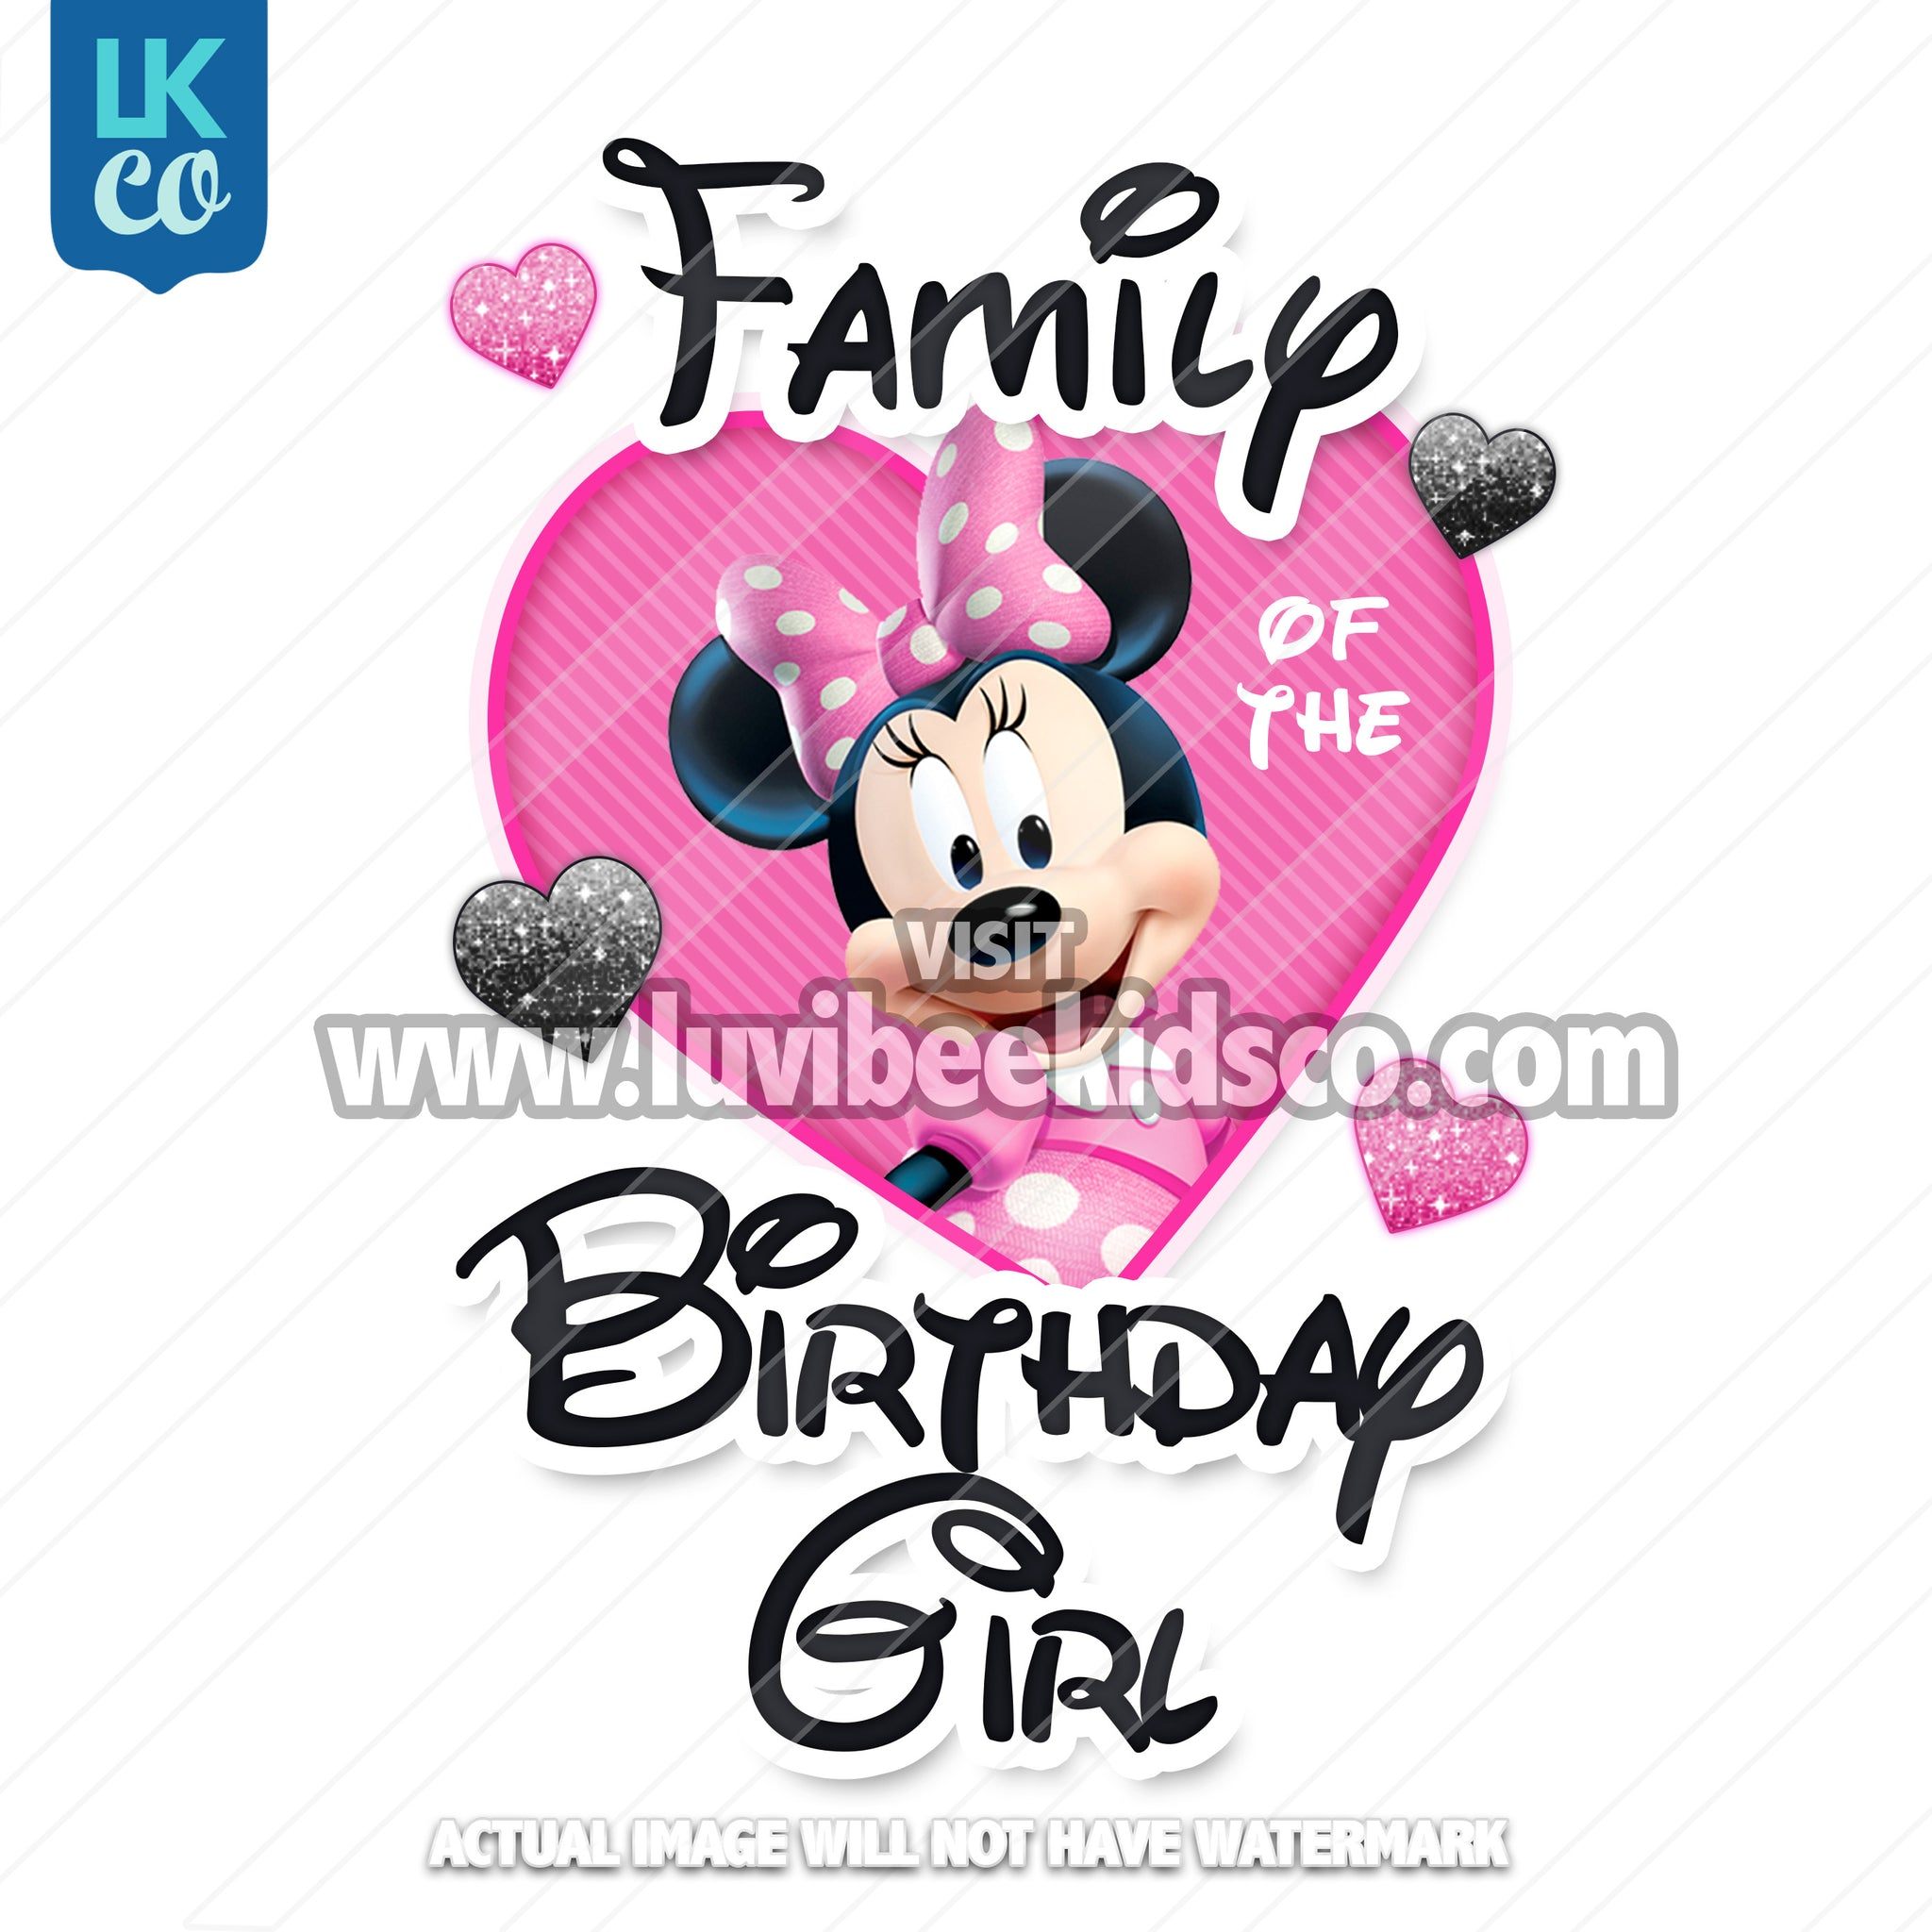 Minnie Mouse Iron On Transfer | Add Family Member of the Birthday Girl | Pink & Black - LuvibeeKidsCo